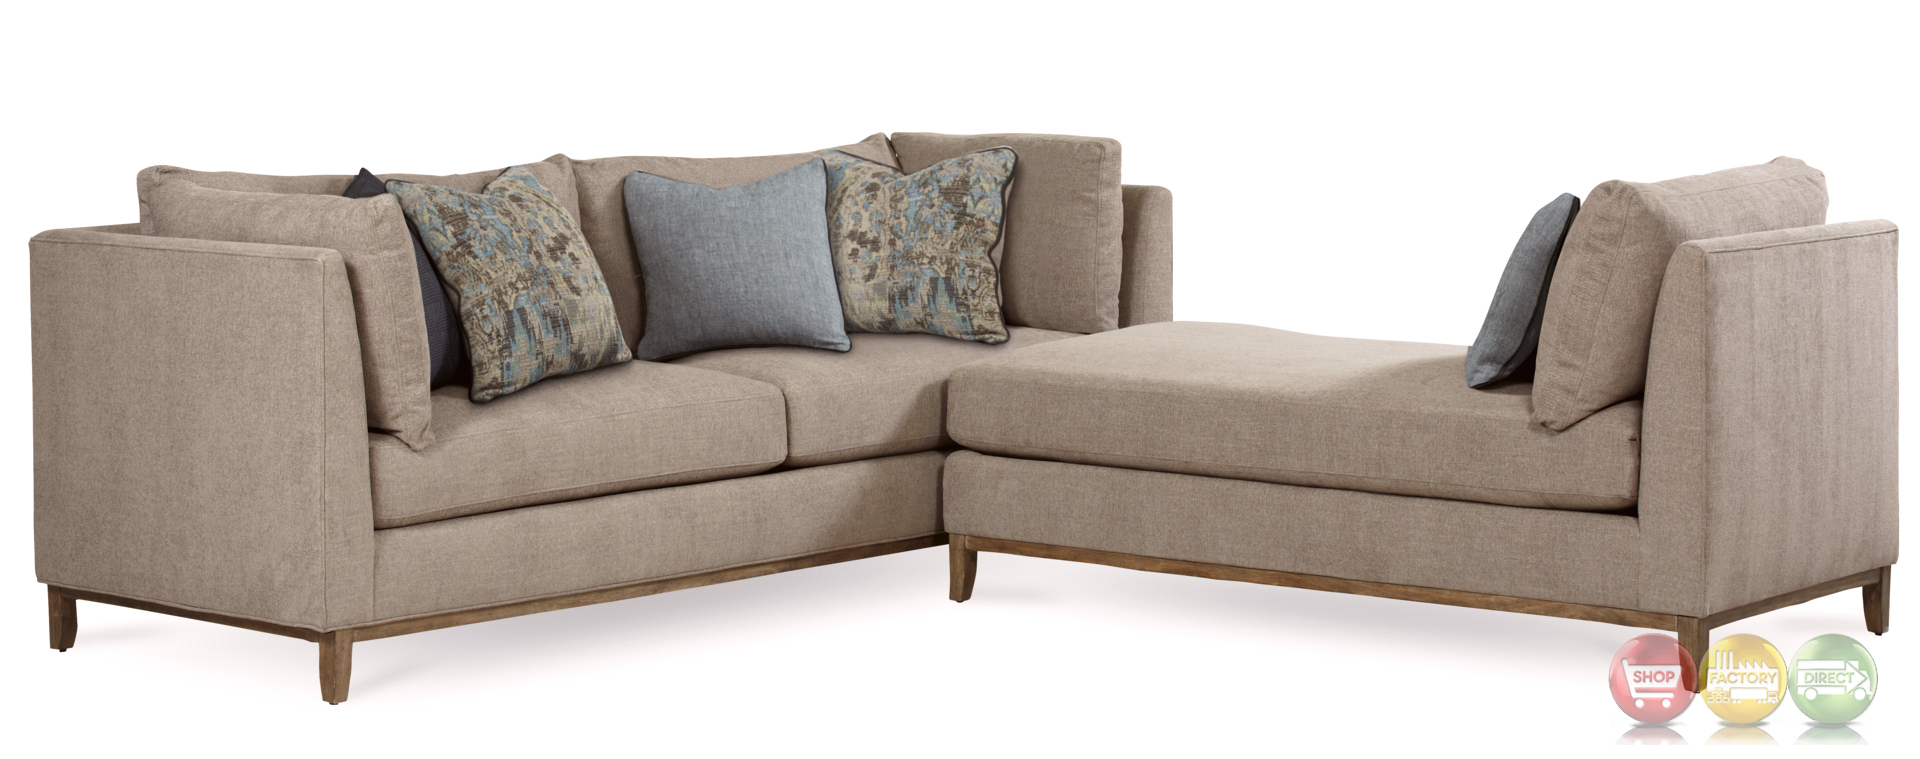 Epicenters chaplin natural beige chaise with rustic pine for Beige sectional with chaise